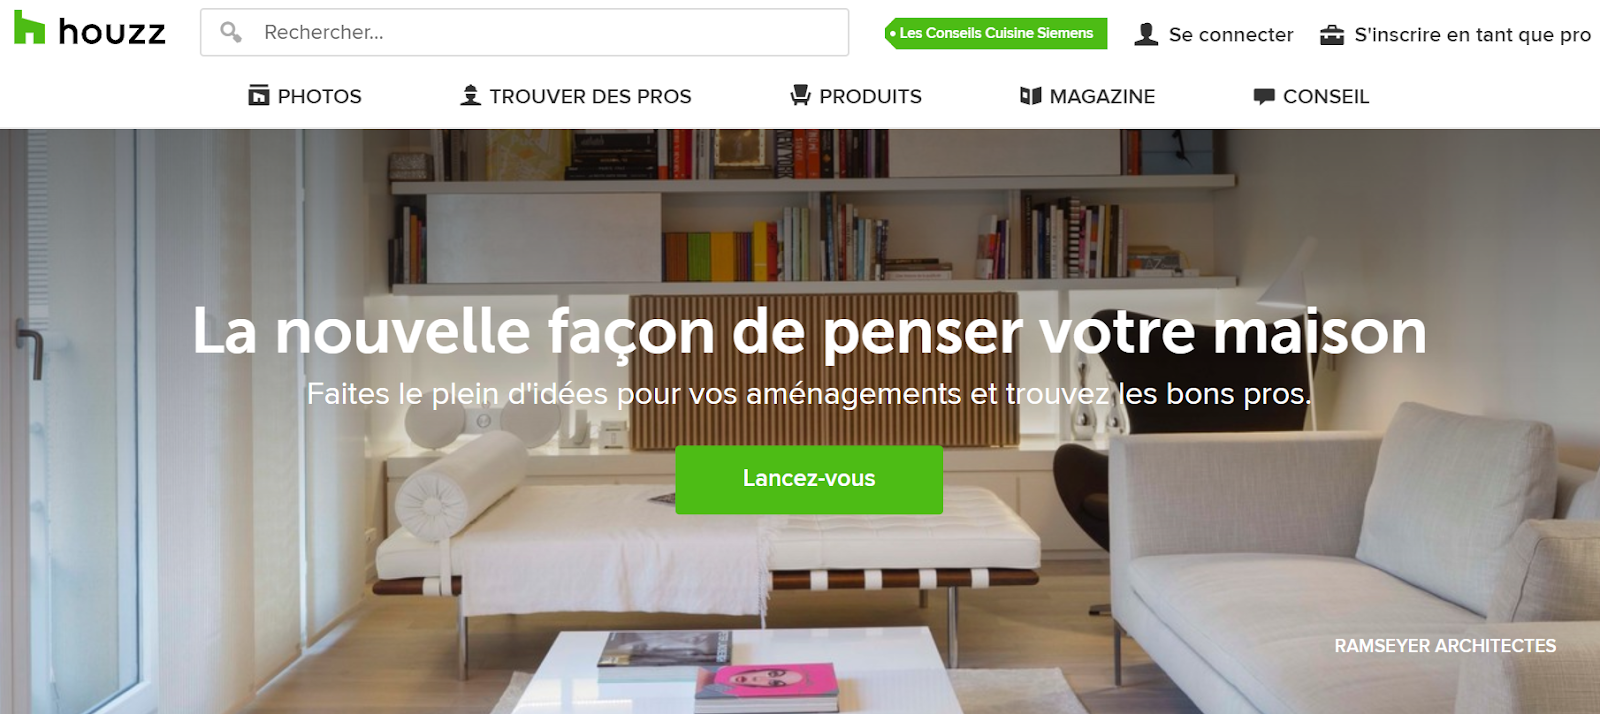 site houzz